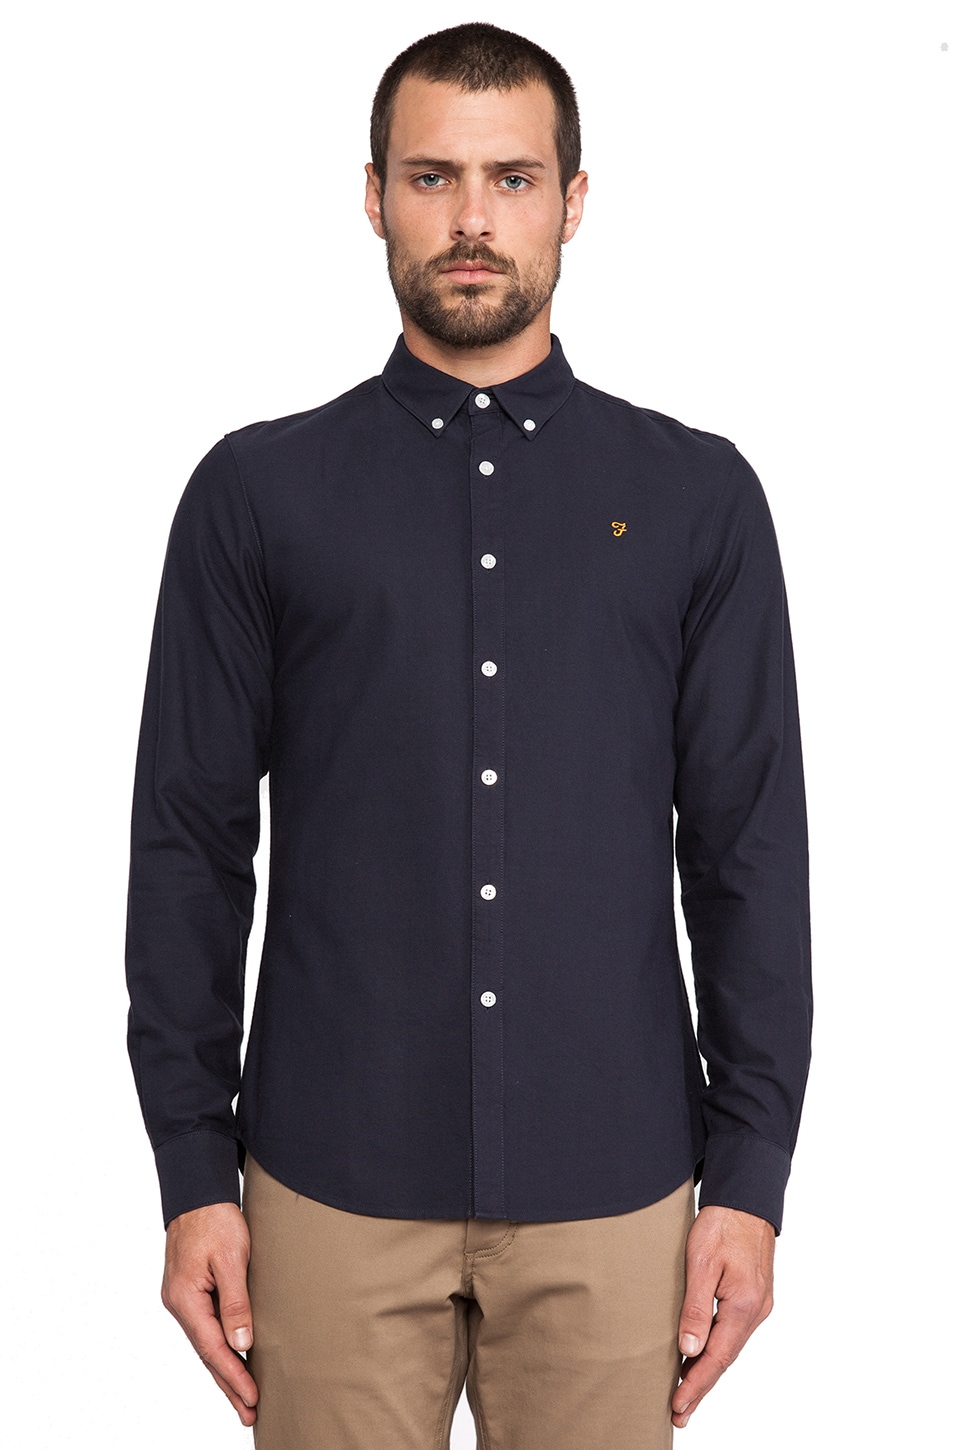 FARAH VINTAGE The Brewer in Navy